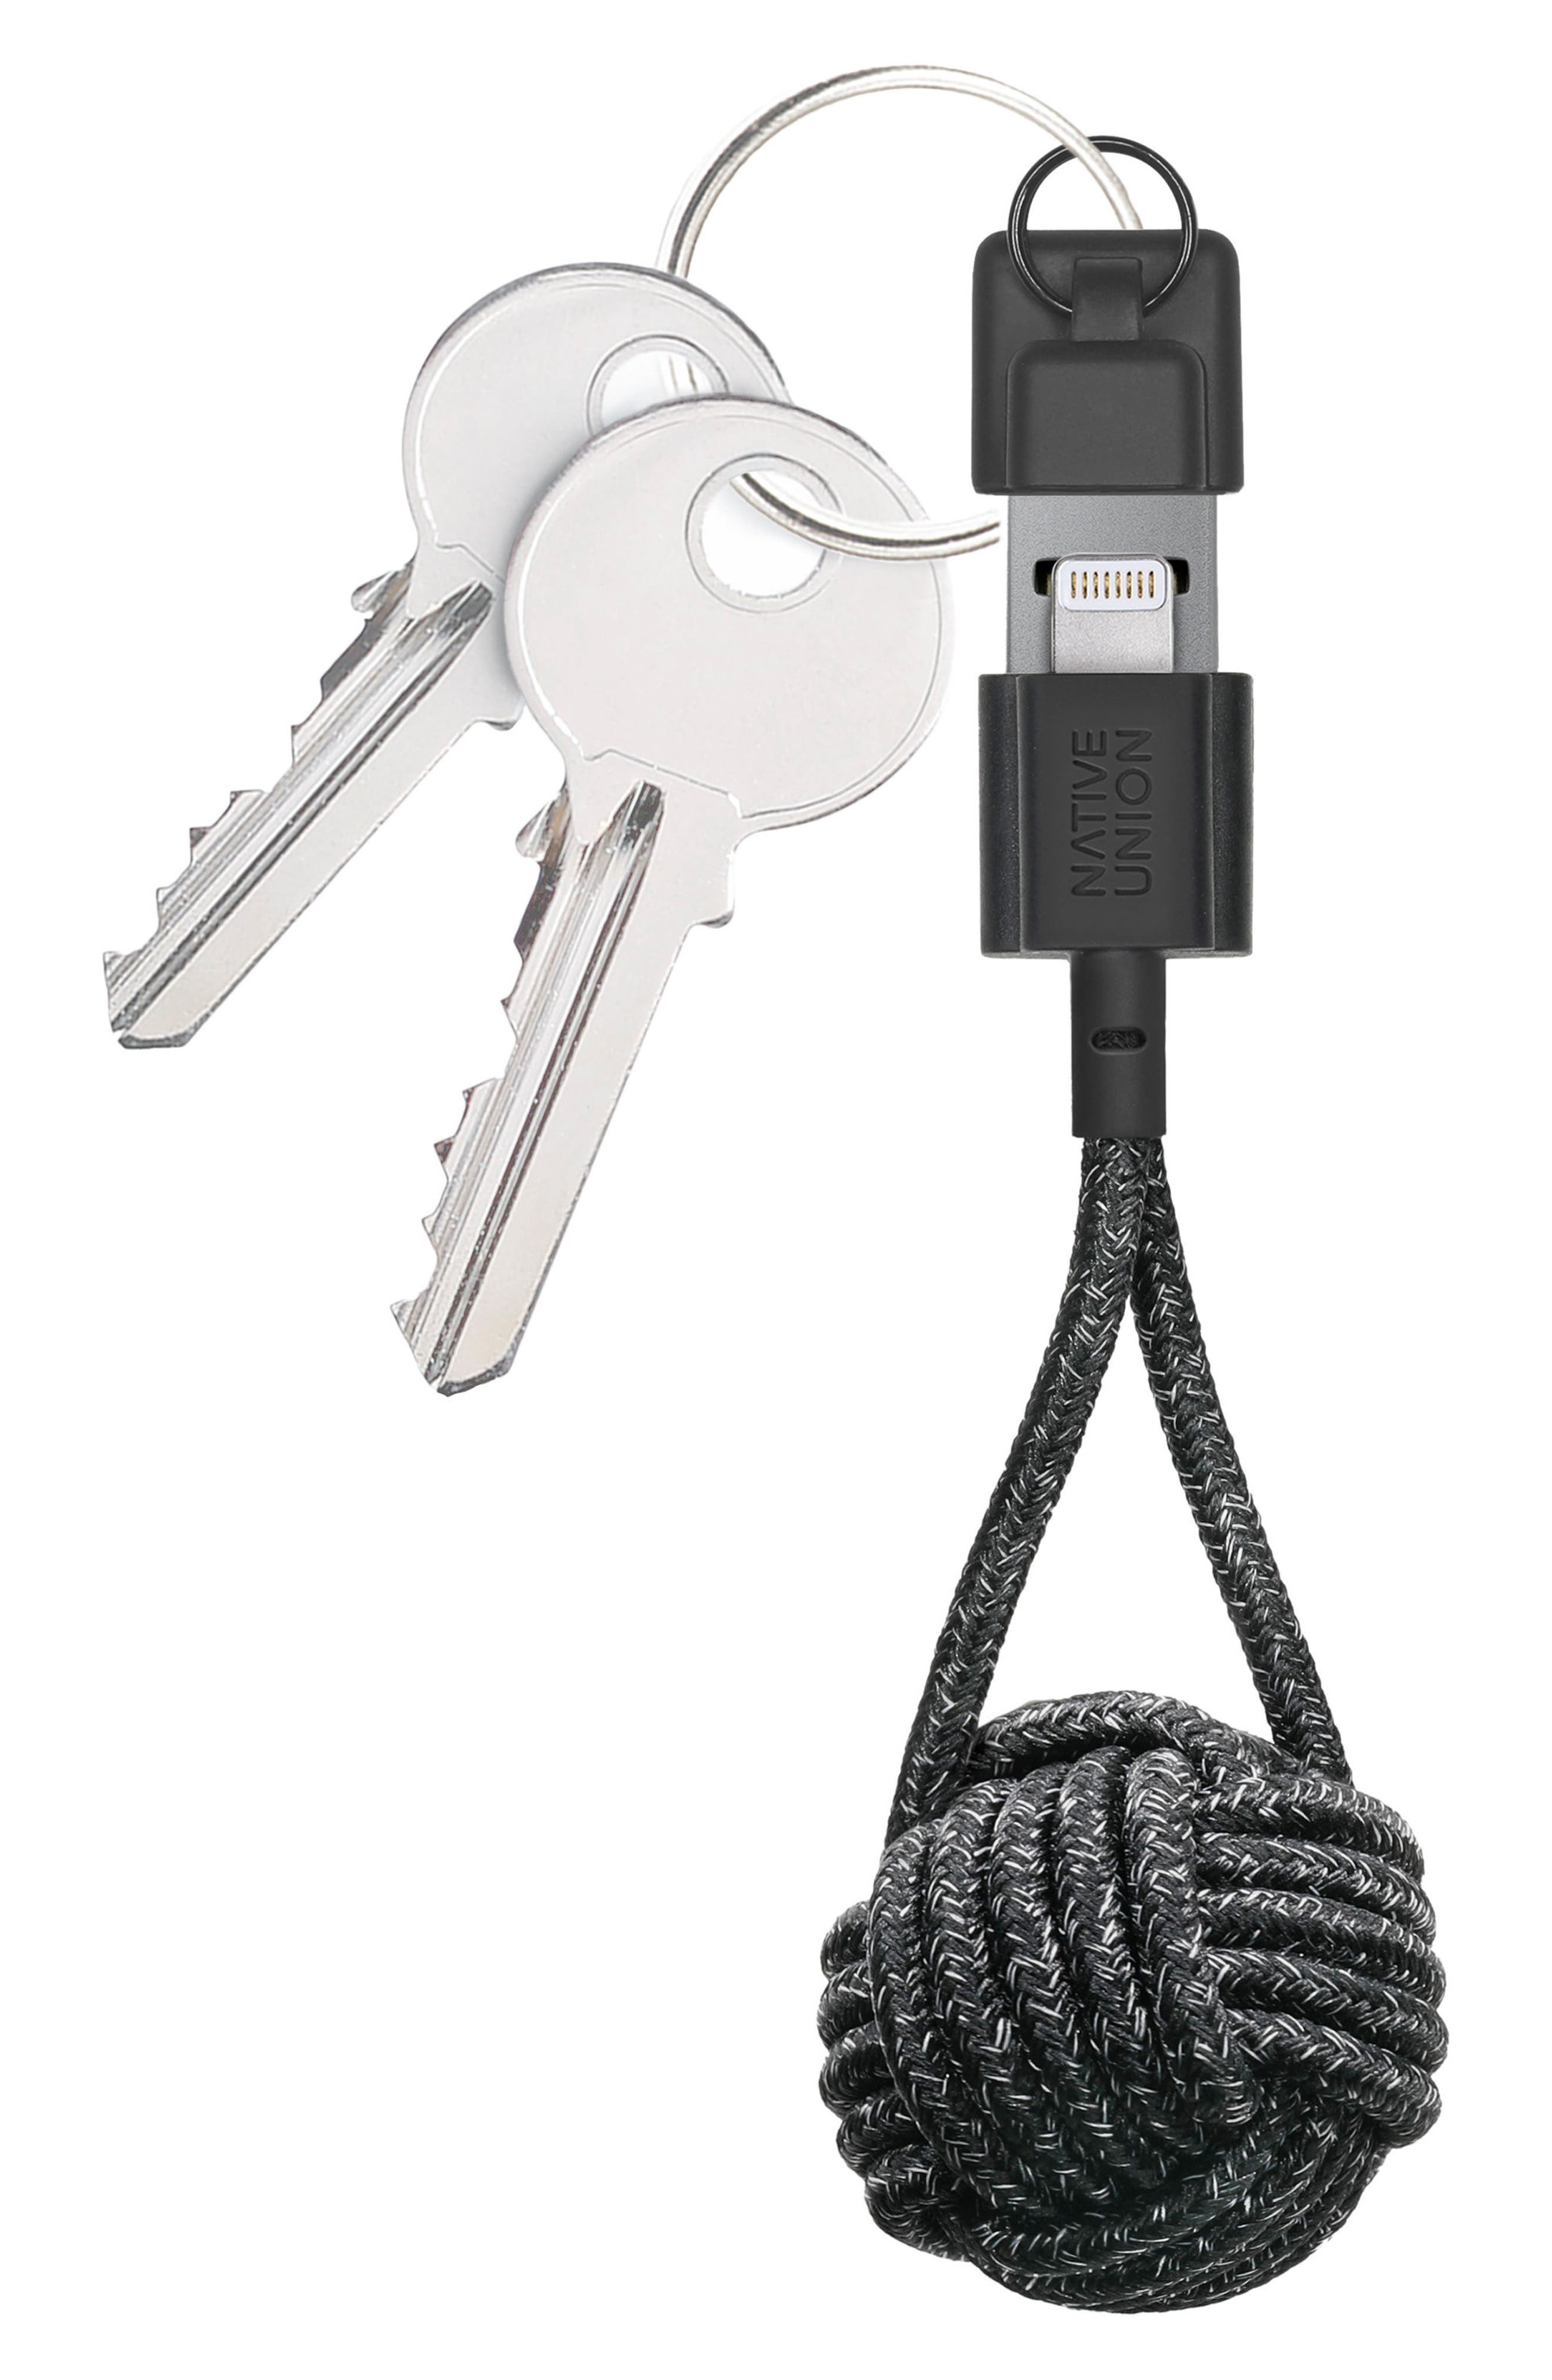 KEY Lightning Charging Cable Key Chain,                         Main,                         color, Black And White